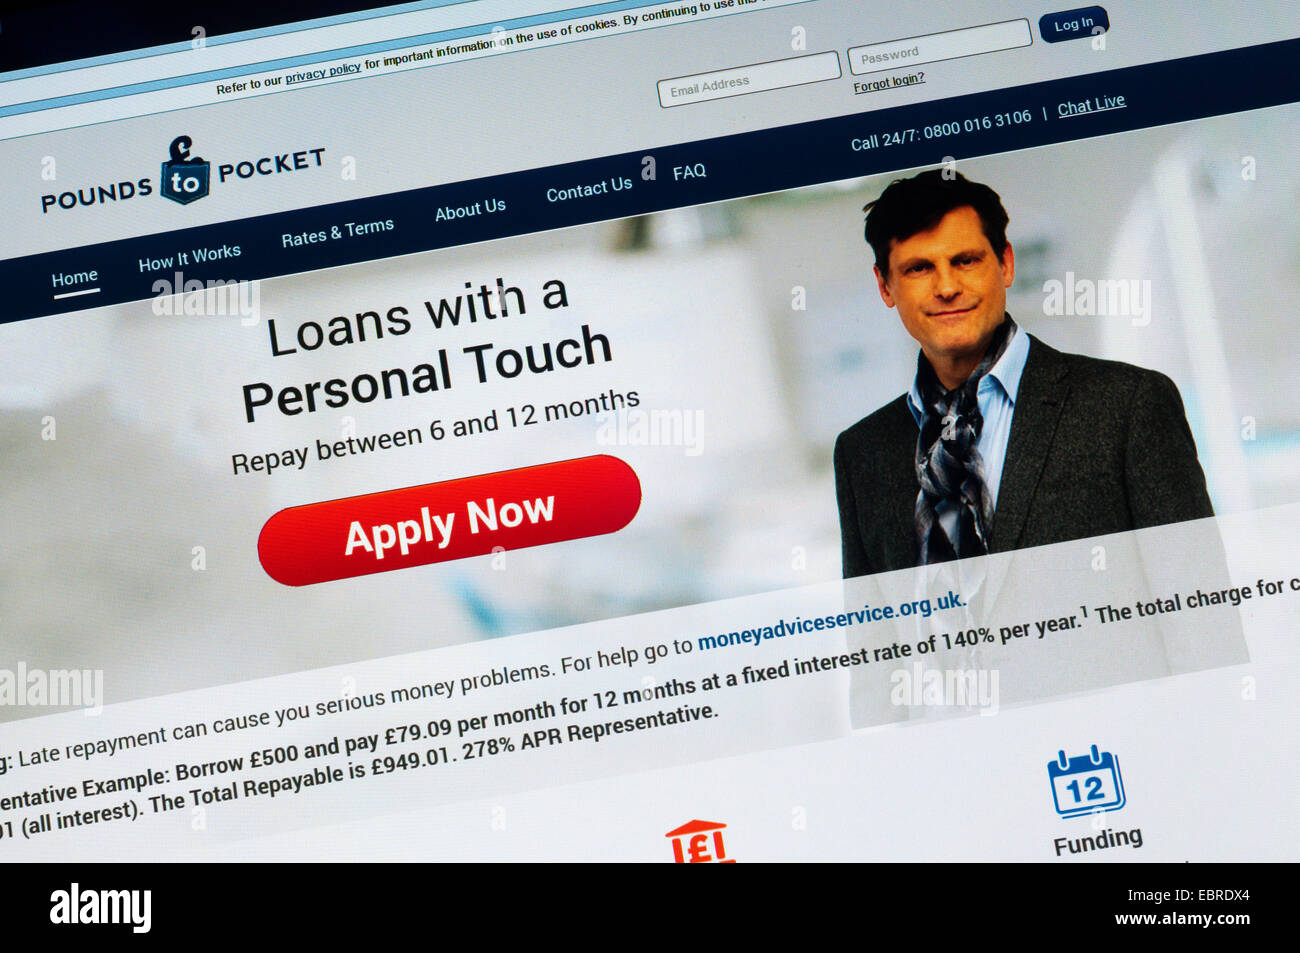 What happens if you dont pay back a payday loan in texas image 3